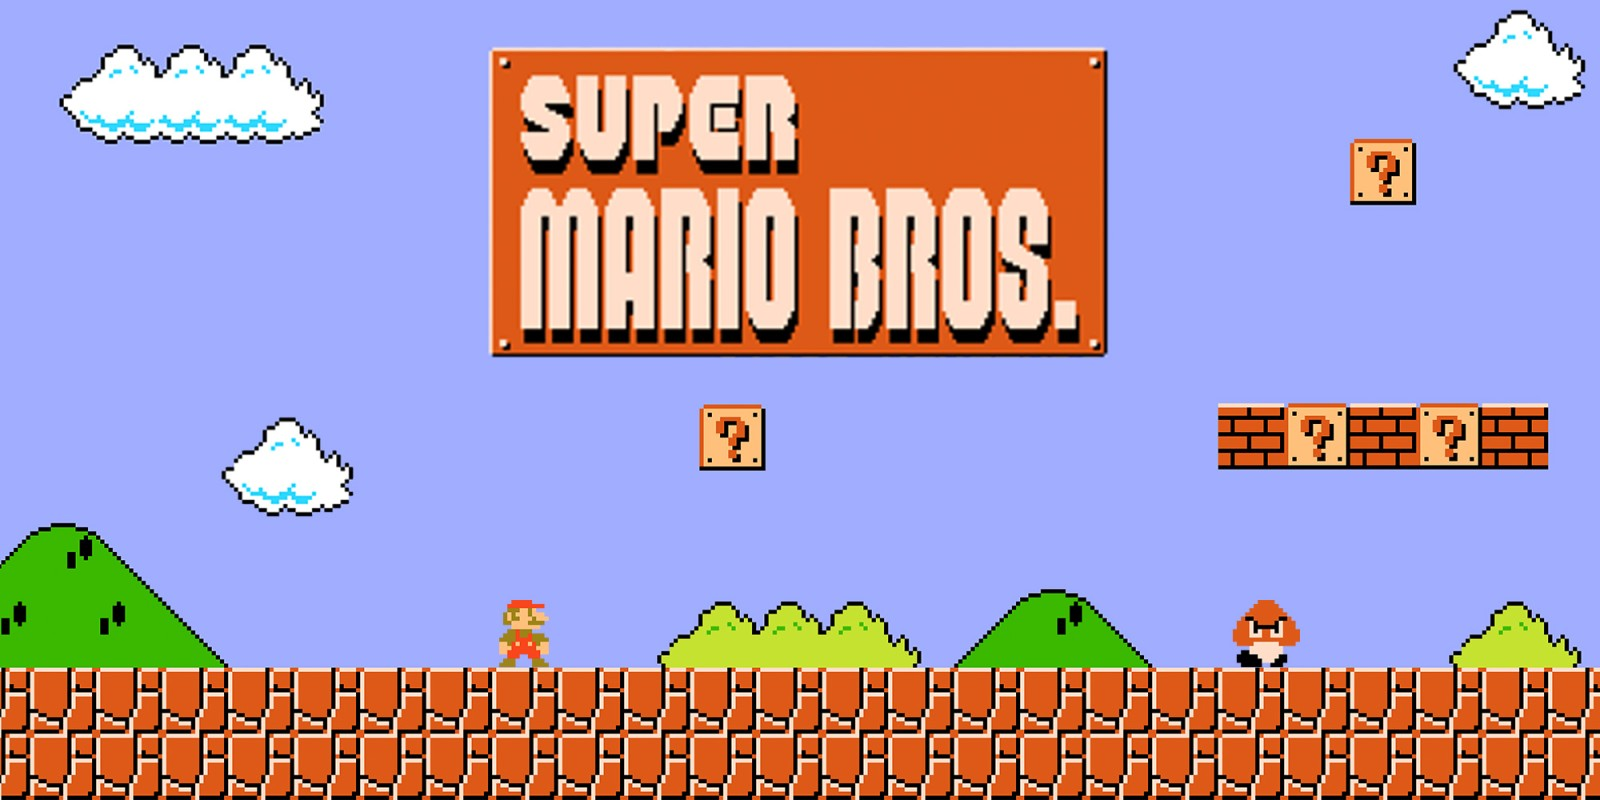 Super Mario Bros.the most expensive game ever sold at $100,000+